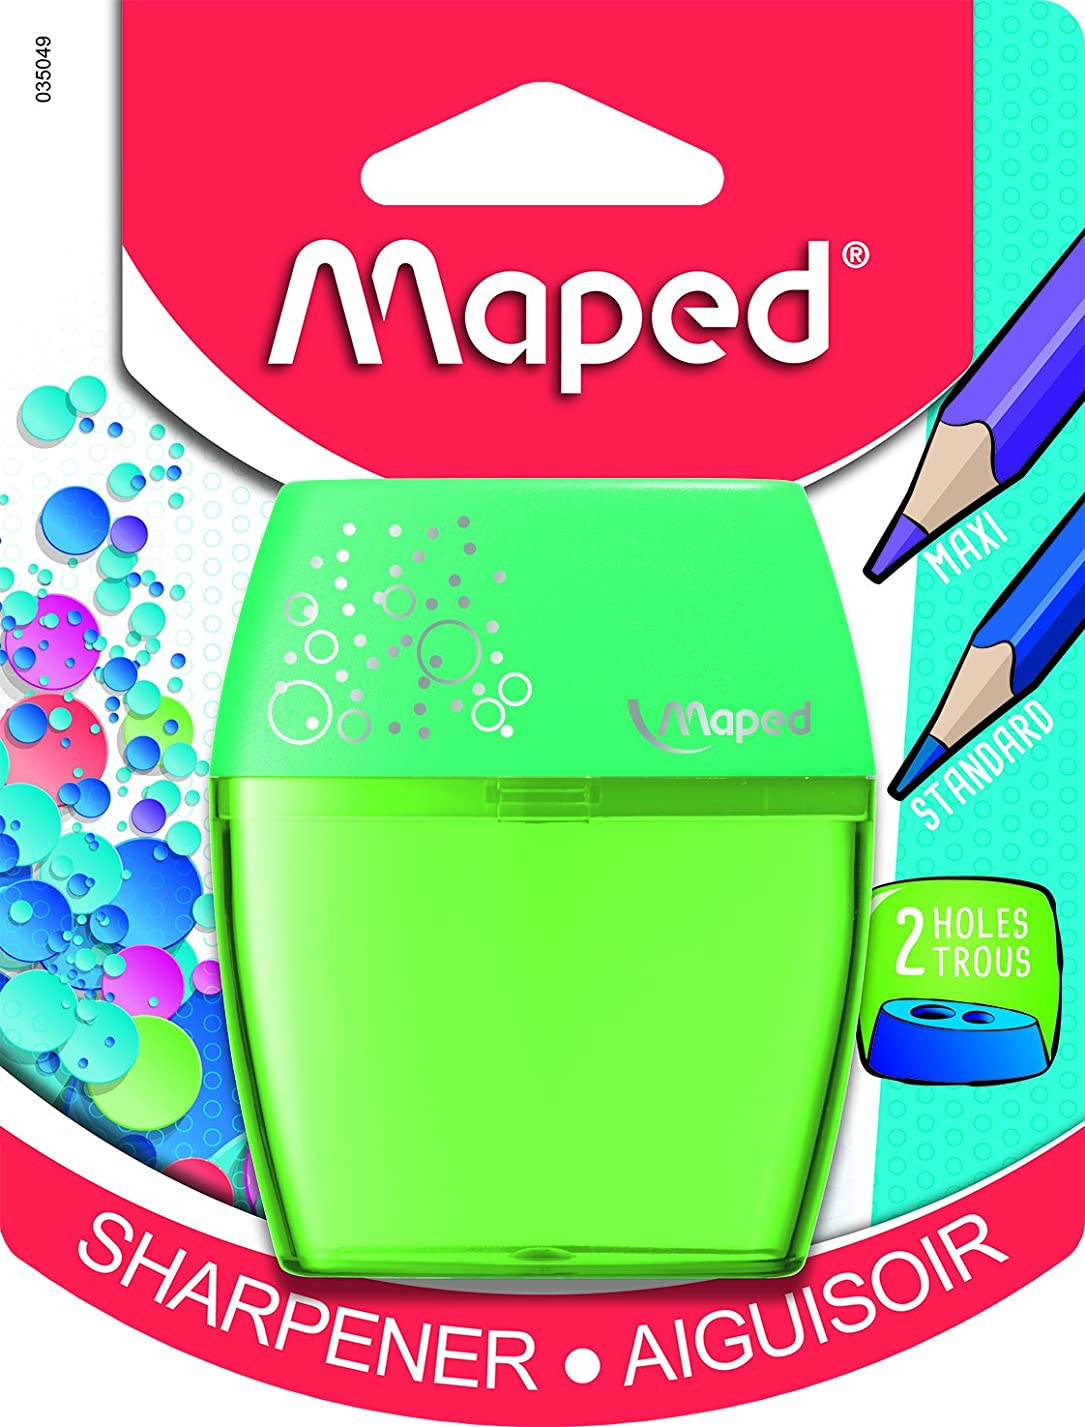 Maped Shaker 2 Hole Pencil Sharpener, Assorted Colors (035049) tv88499789